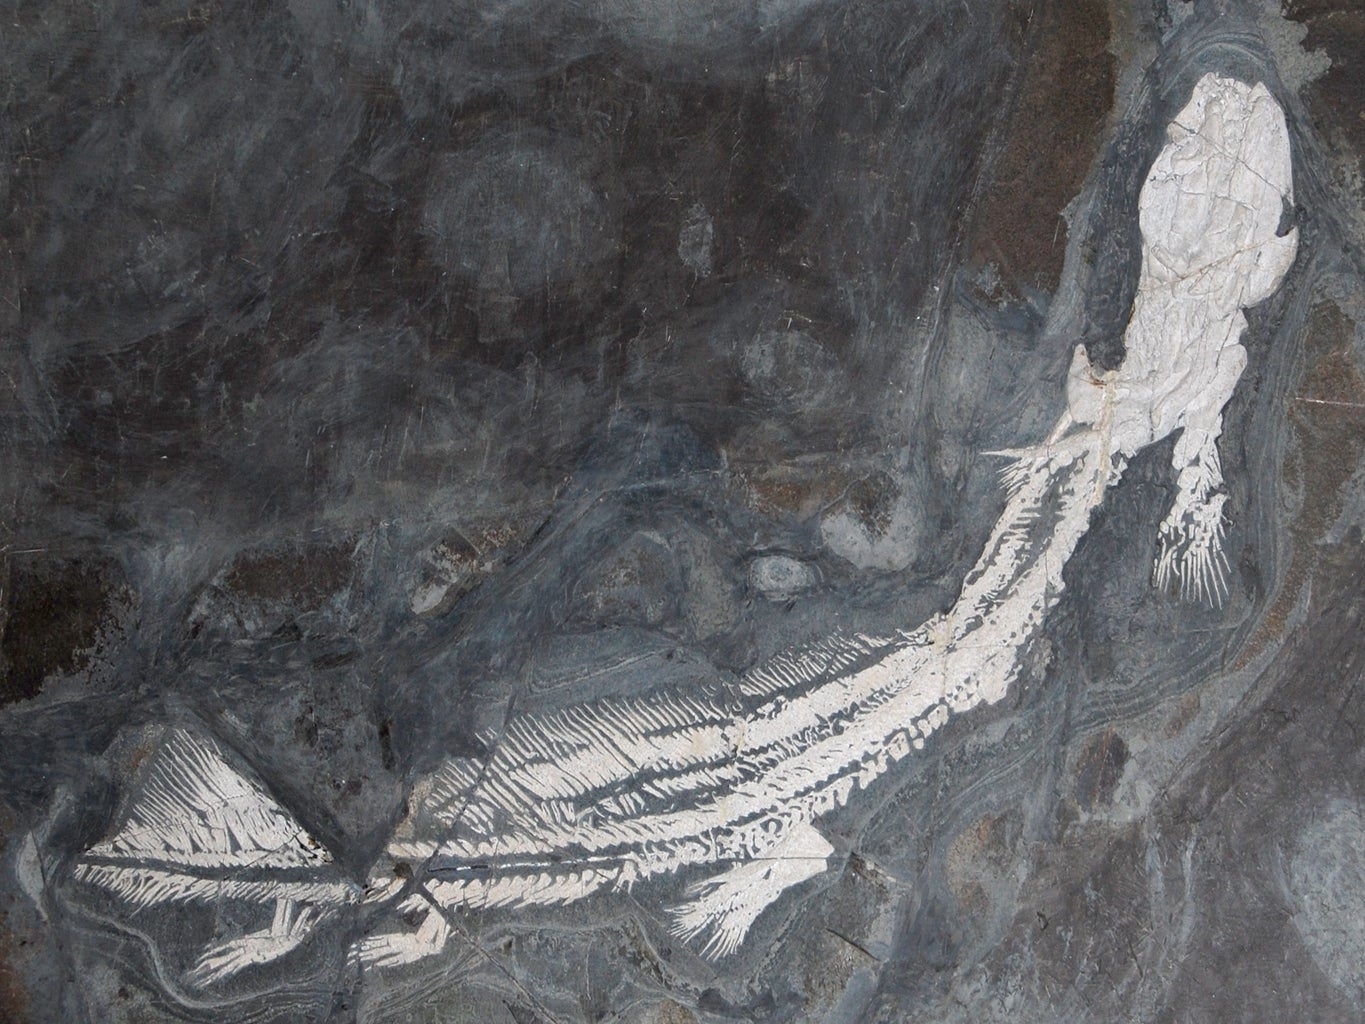 Orthacanthus fossil